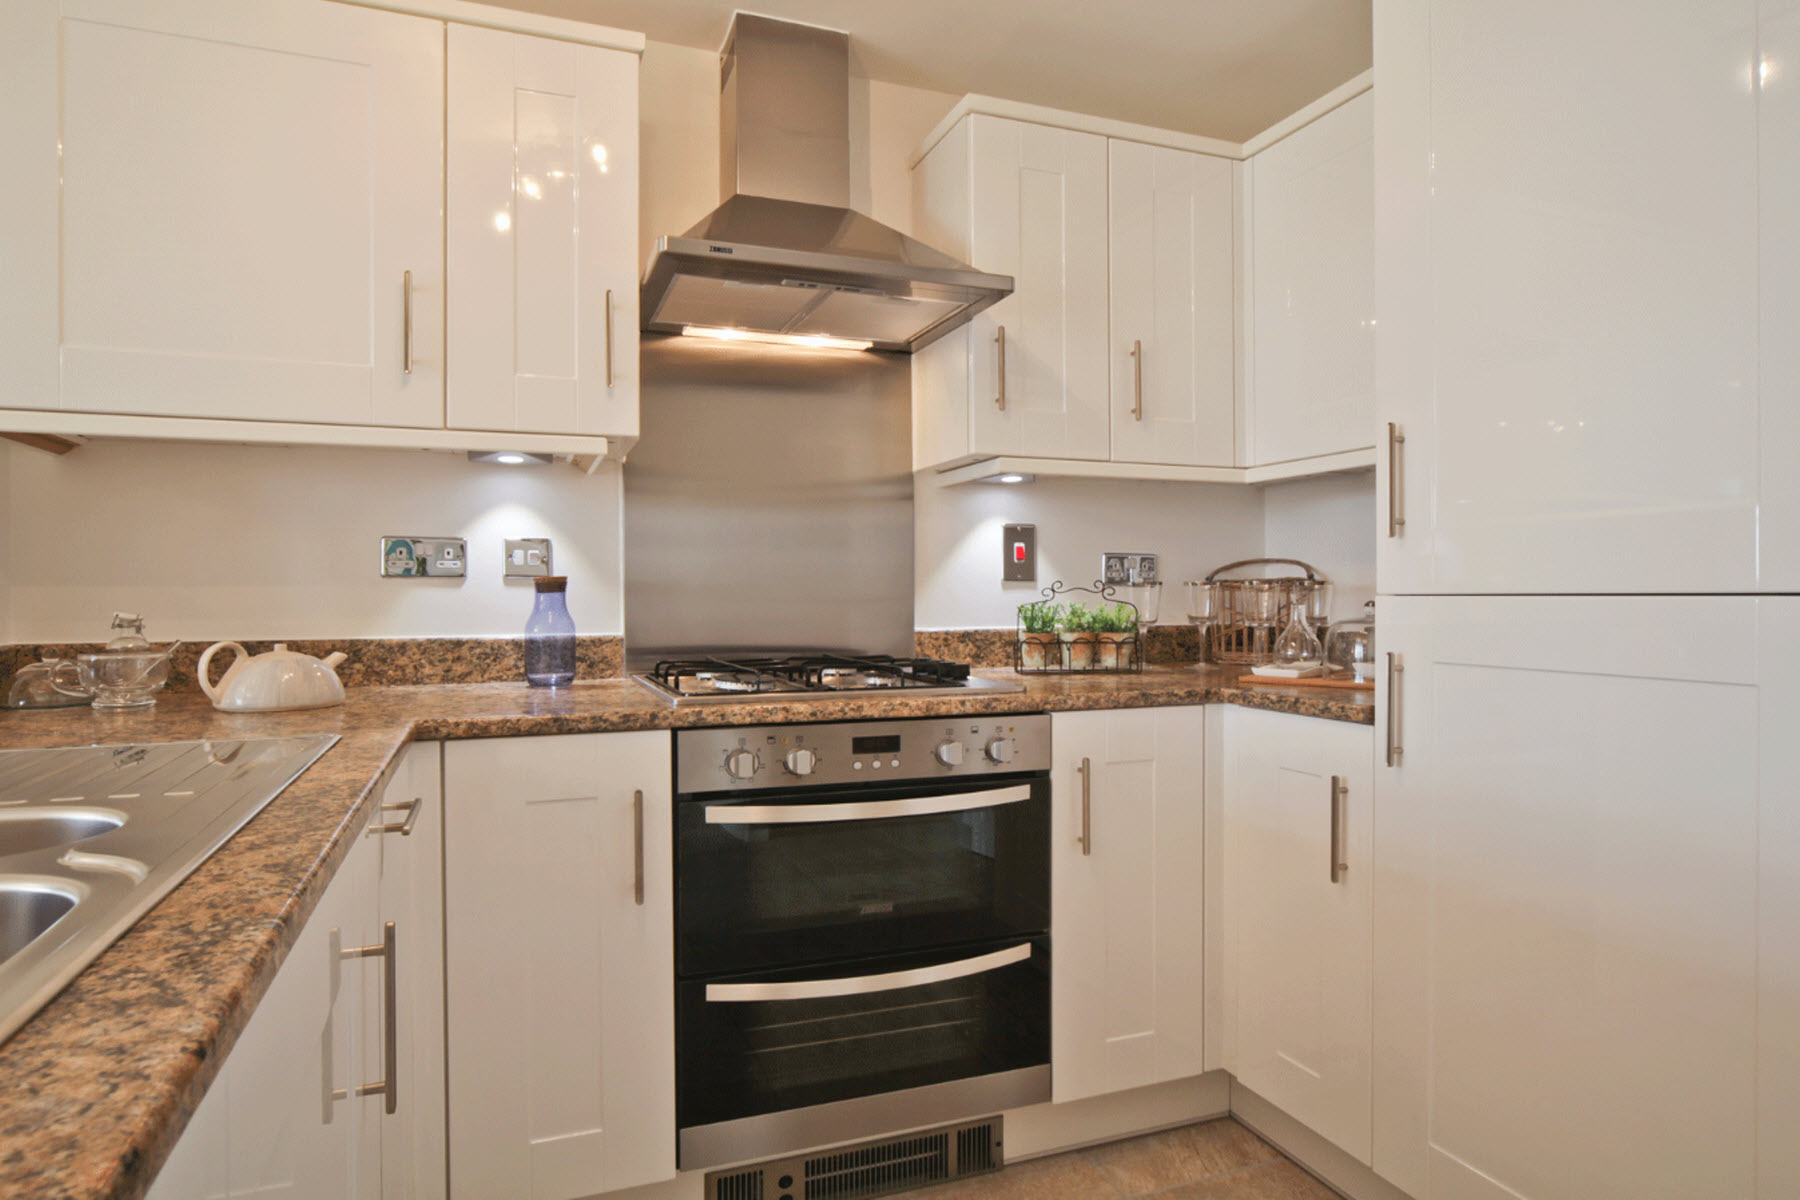 TW Exeter - Mayfield Gardens - Ashenford example kitchen